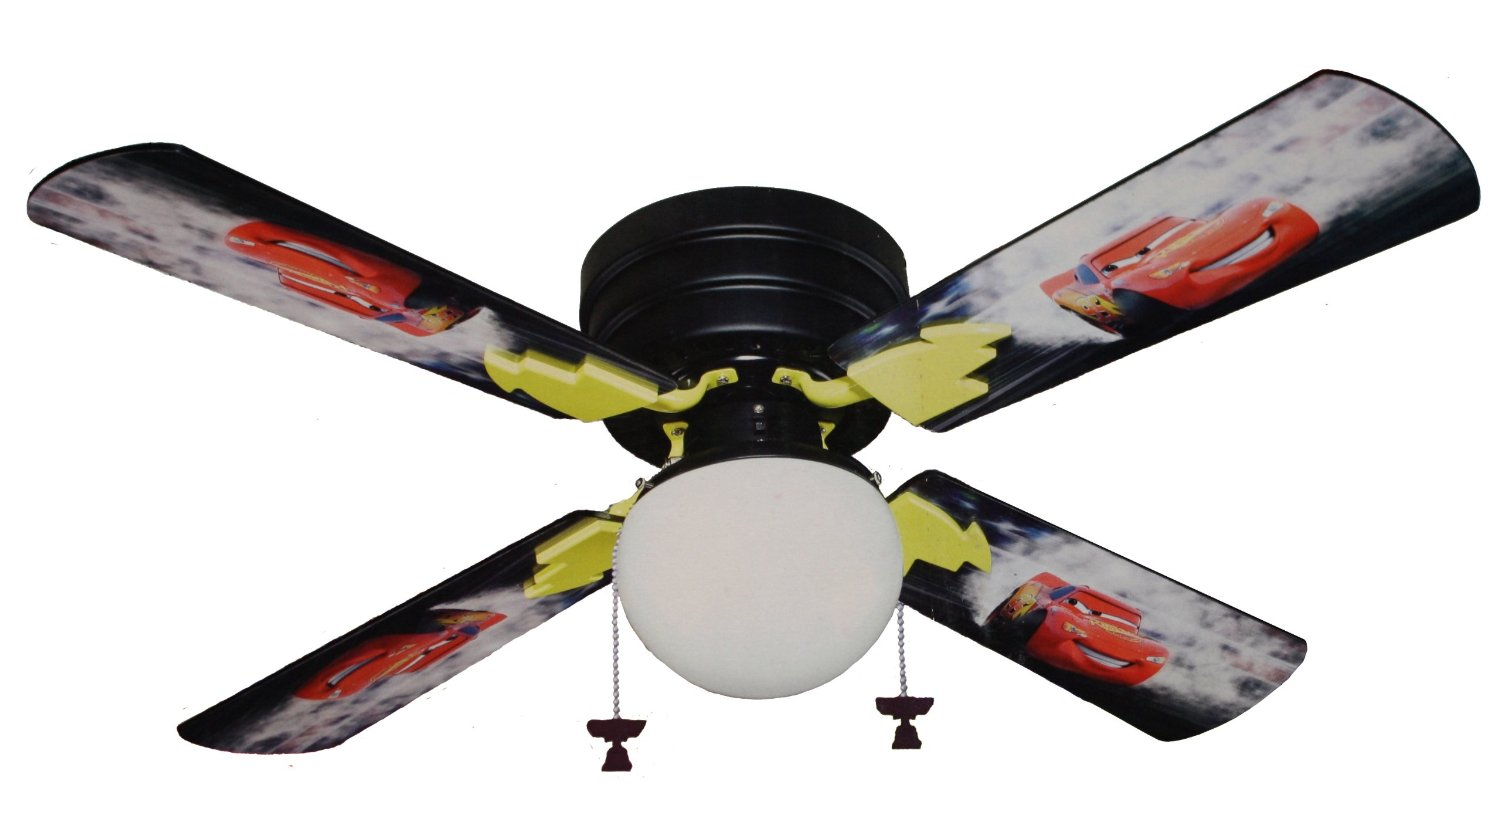 Auto Ceiling Fan : Battery operated ceiling fan an efficient way to get the